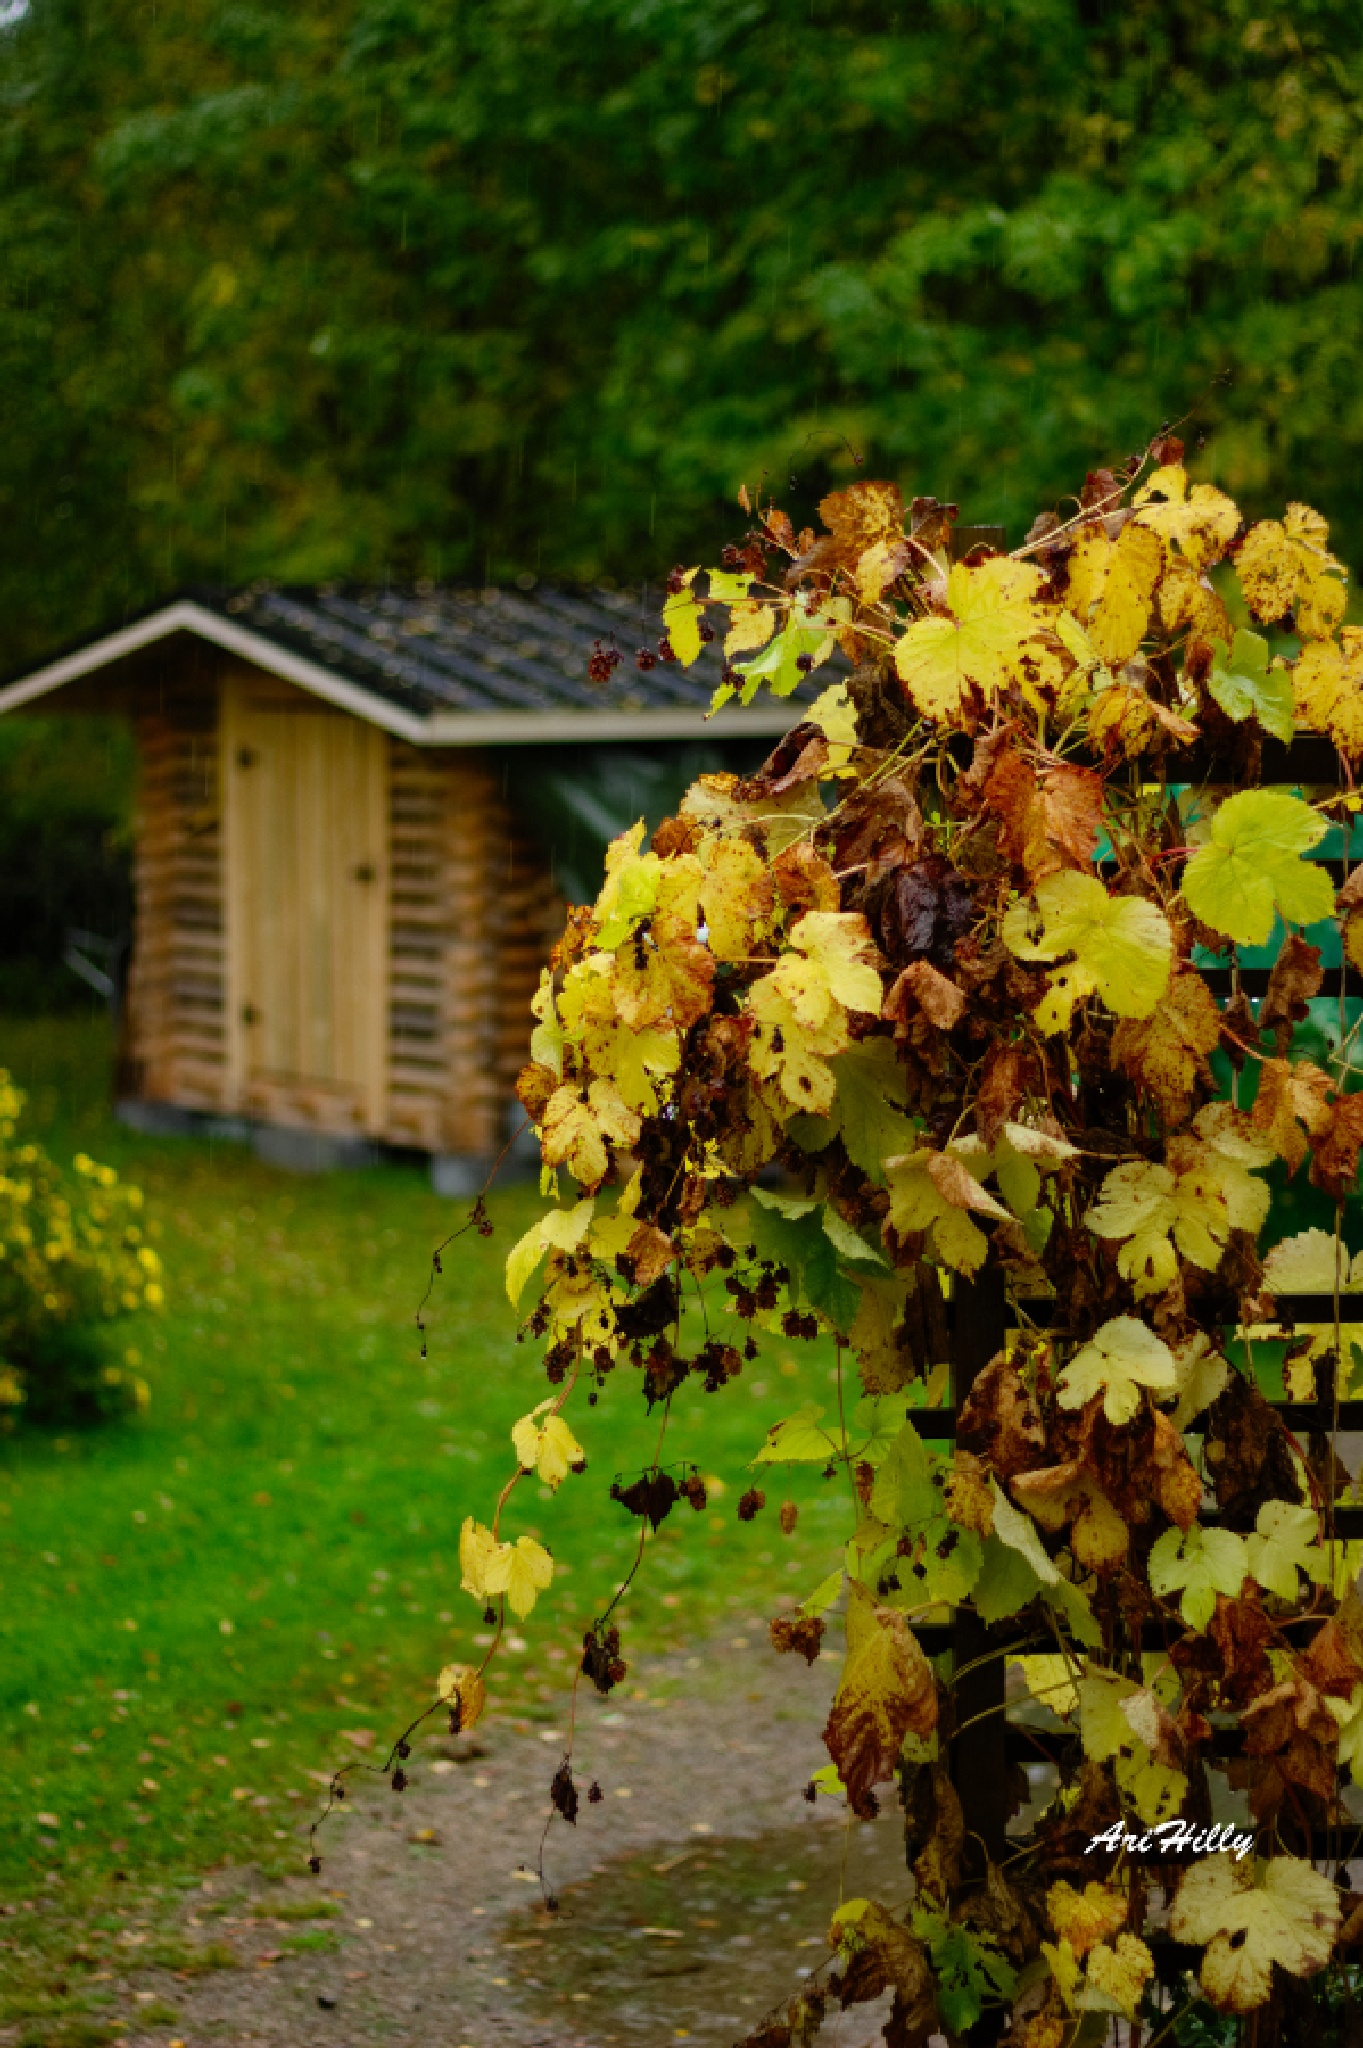 #Autumn #Fall colours #Finland #Yellow #Shed by AriHilly